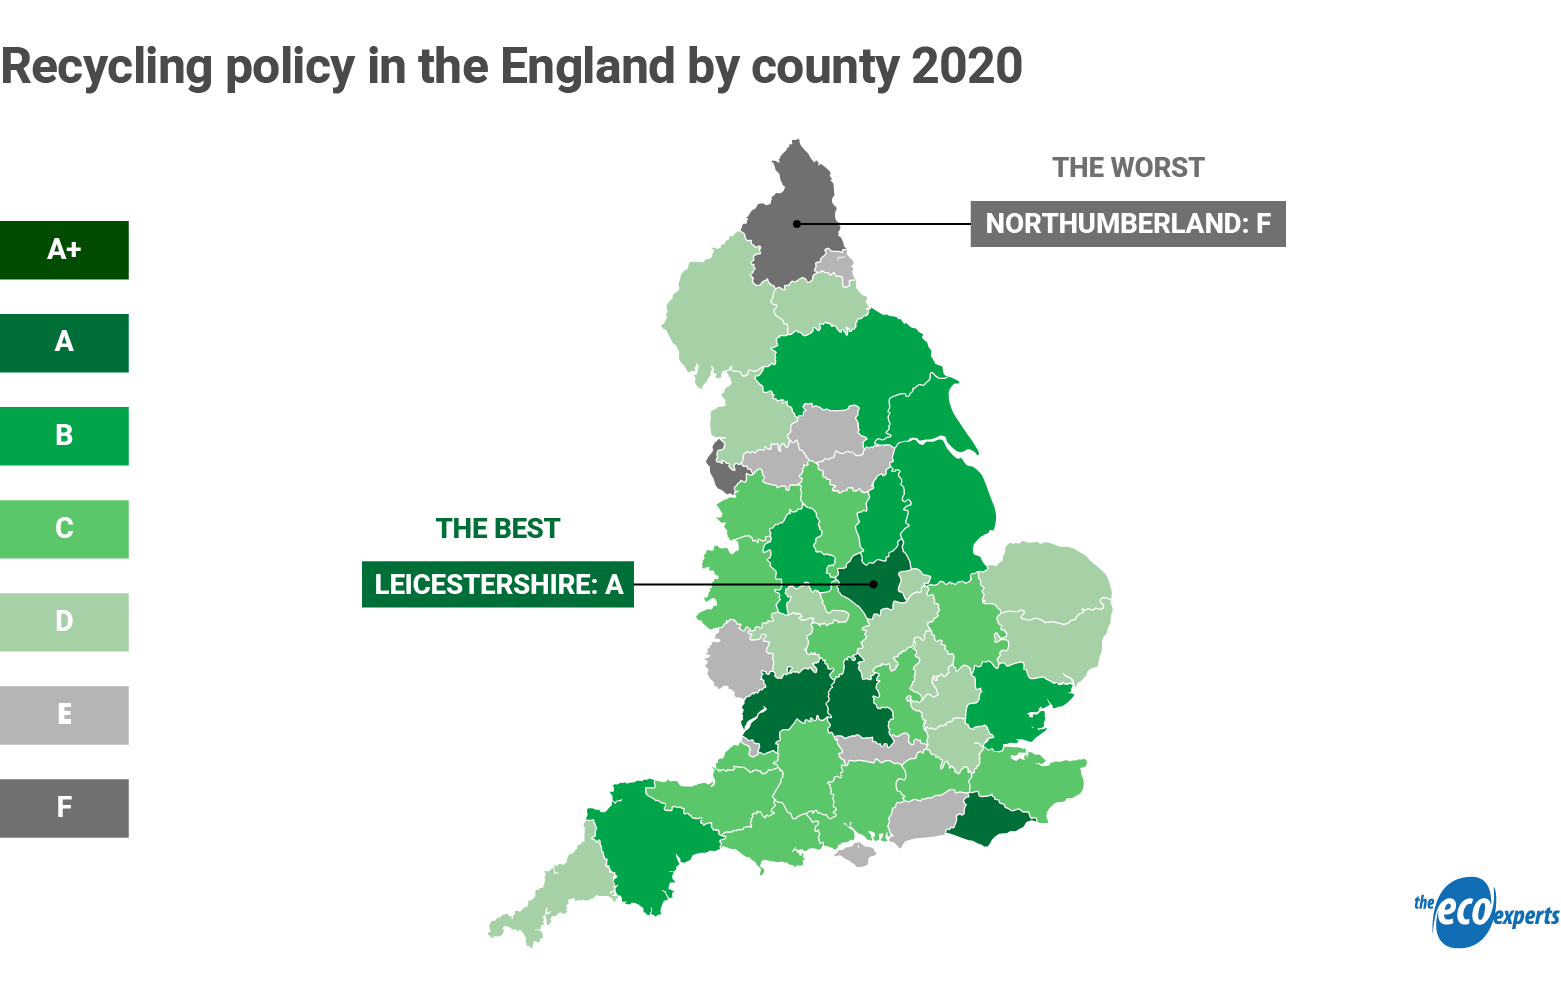 map of England showing each county's recycling policy